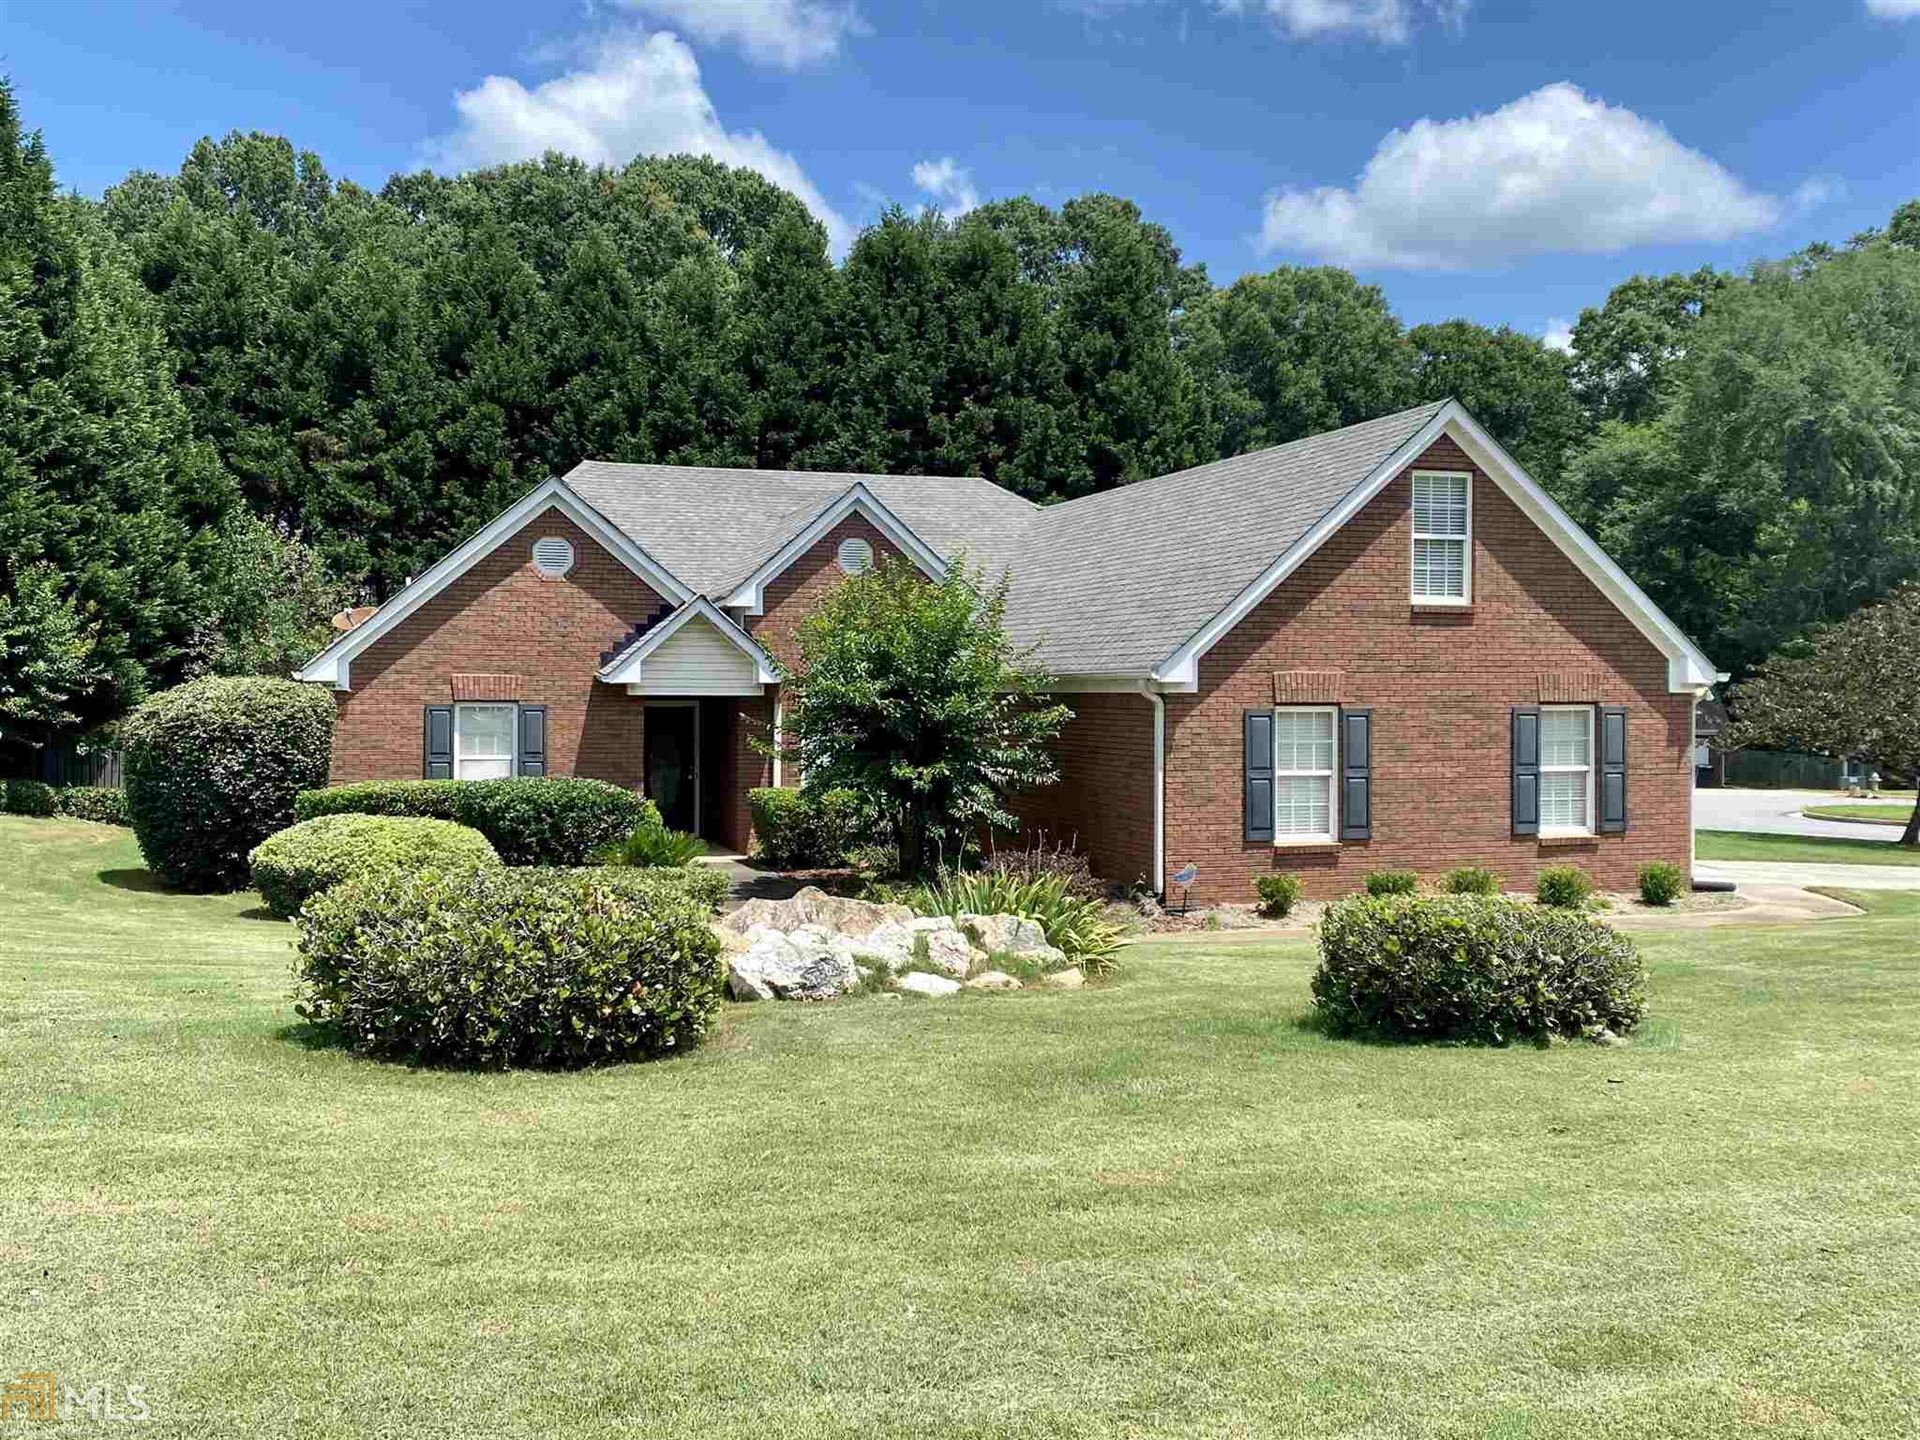 75 Wentworth Dr, Oxford, GA 30054 - #: 8813638